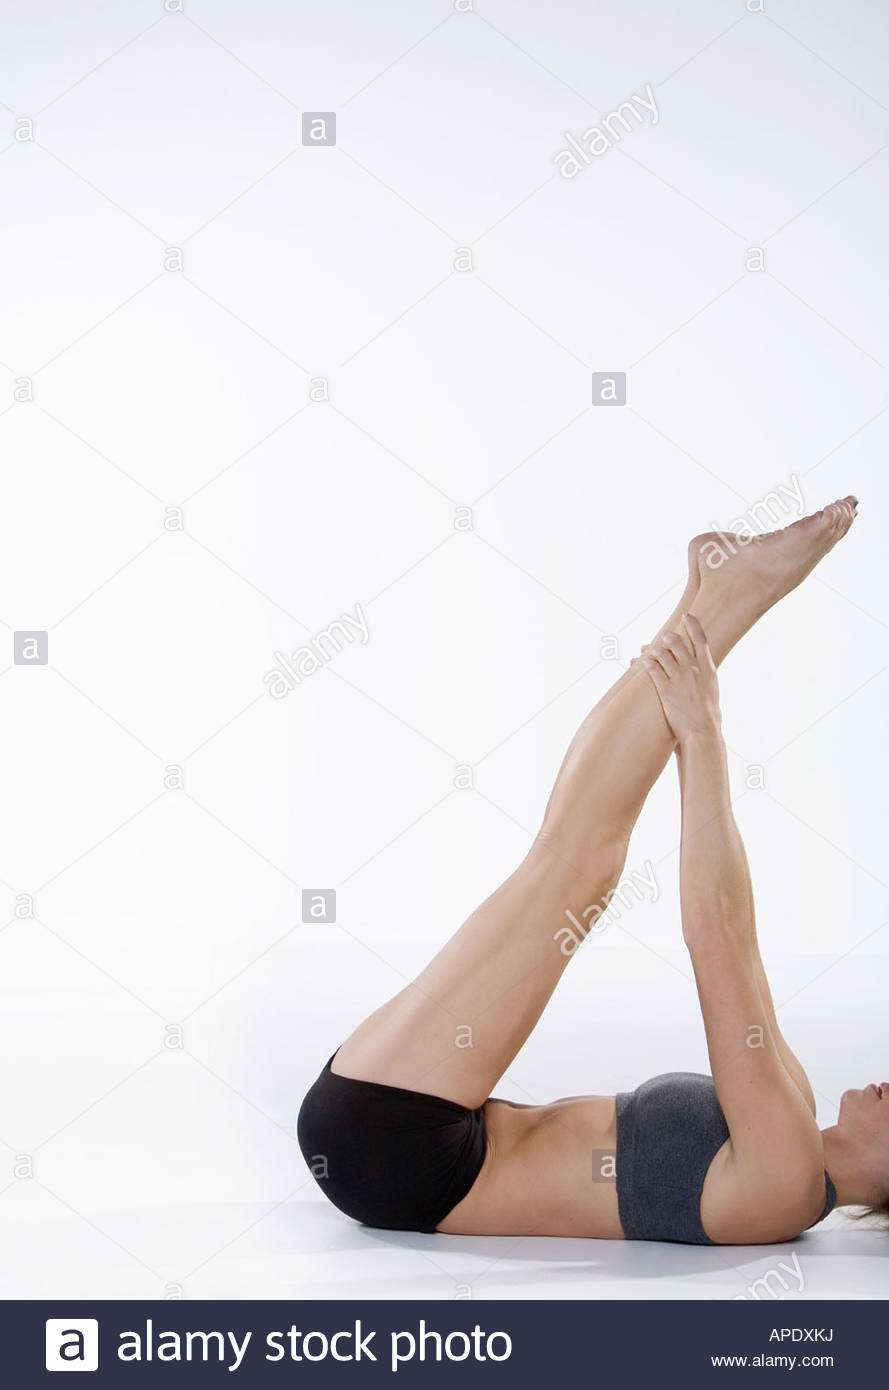 Woman in athletic gear stretching - Stock Image